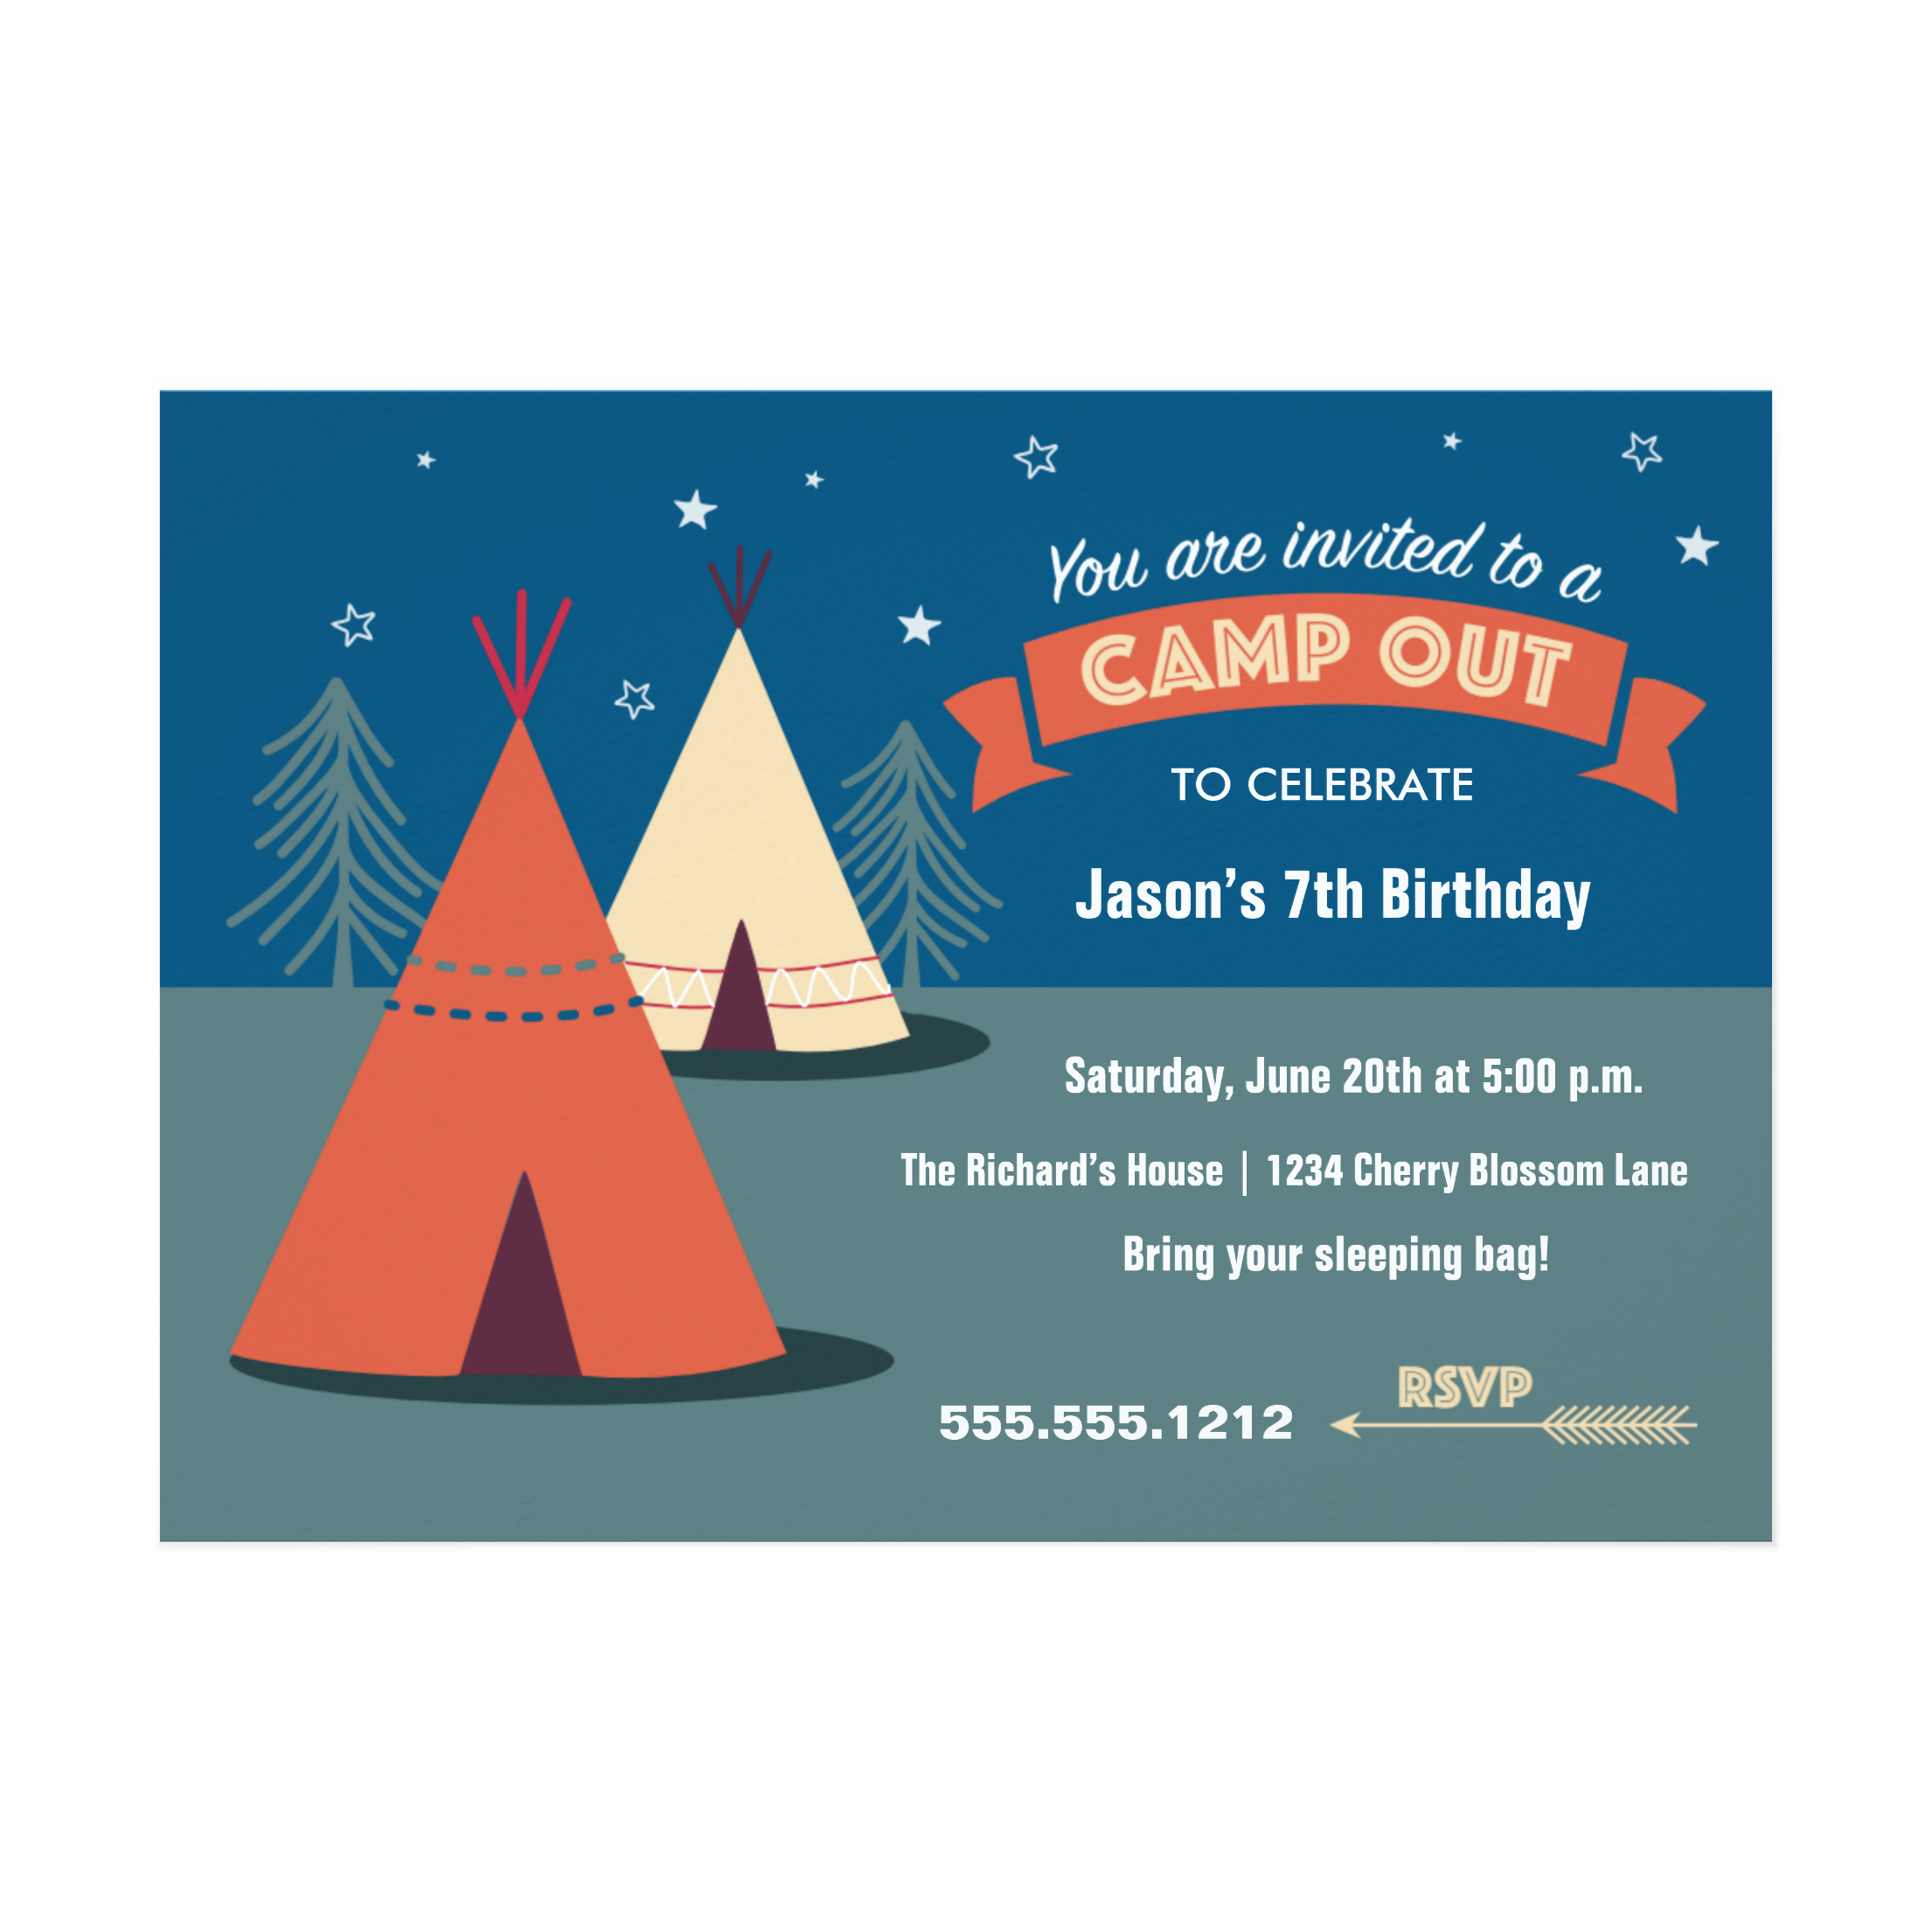 Camp Out Party Invitation